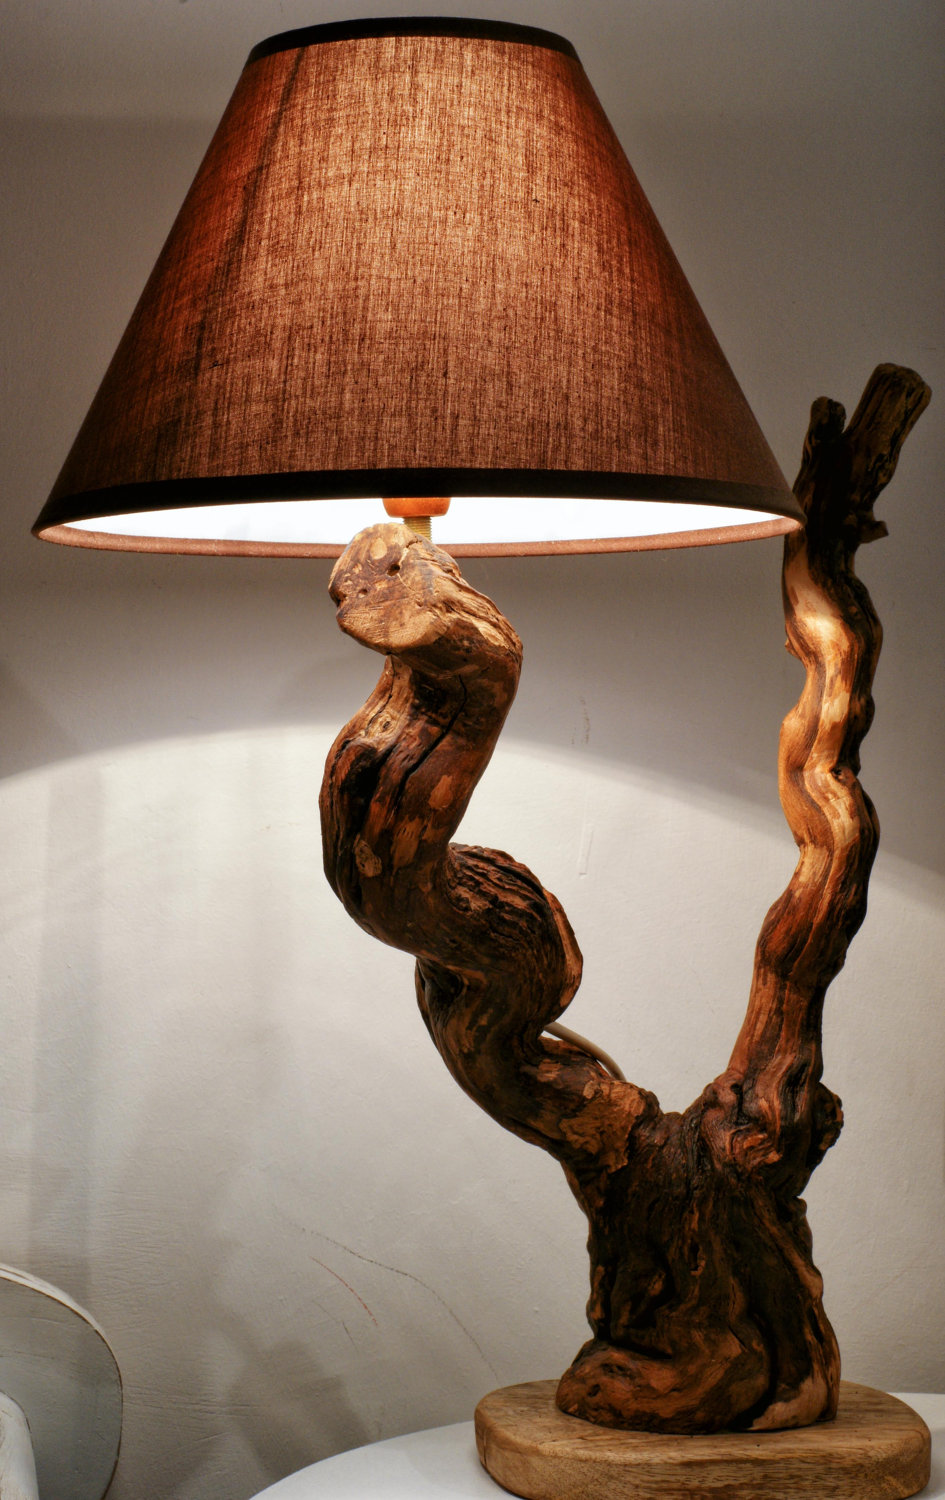 Warm Romantic Bedrooms: Do You Like To Have A Handmade Wooden Lamp?